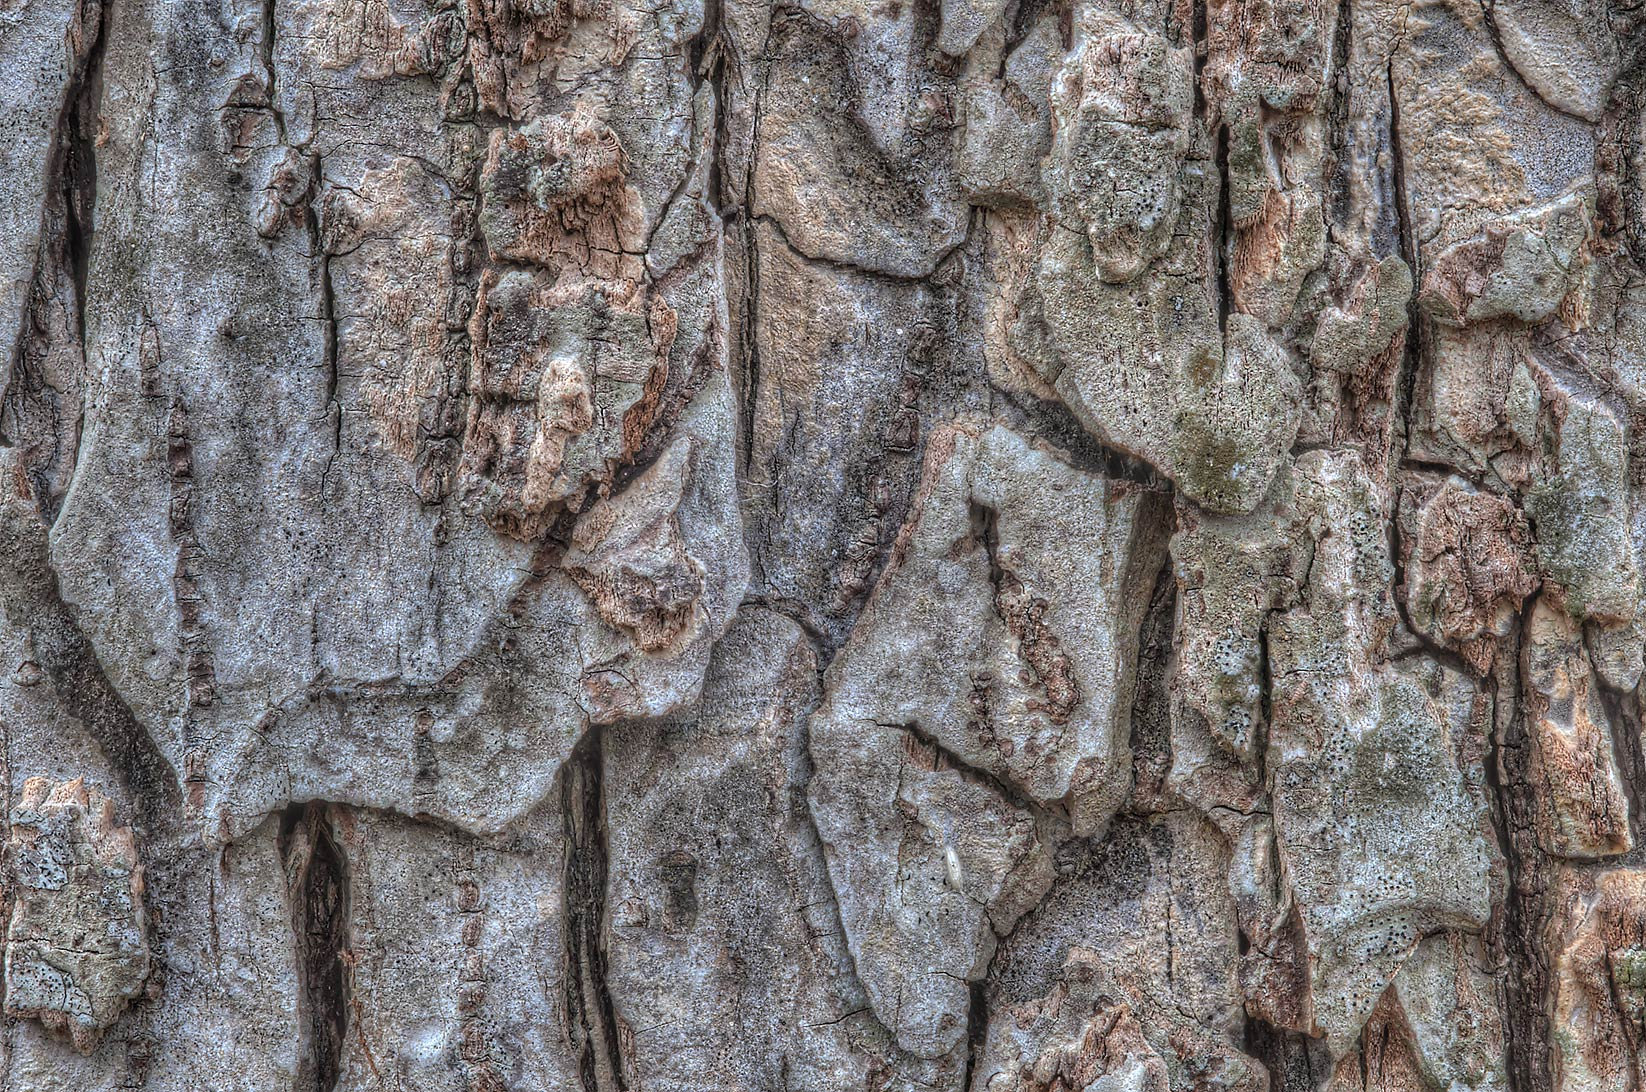 Bark texture near Racoon Run Trail in Lick Creek Park. College Station, Texas